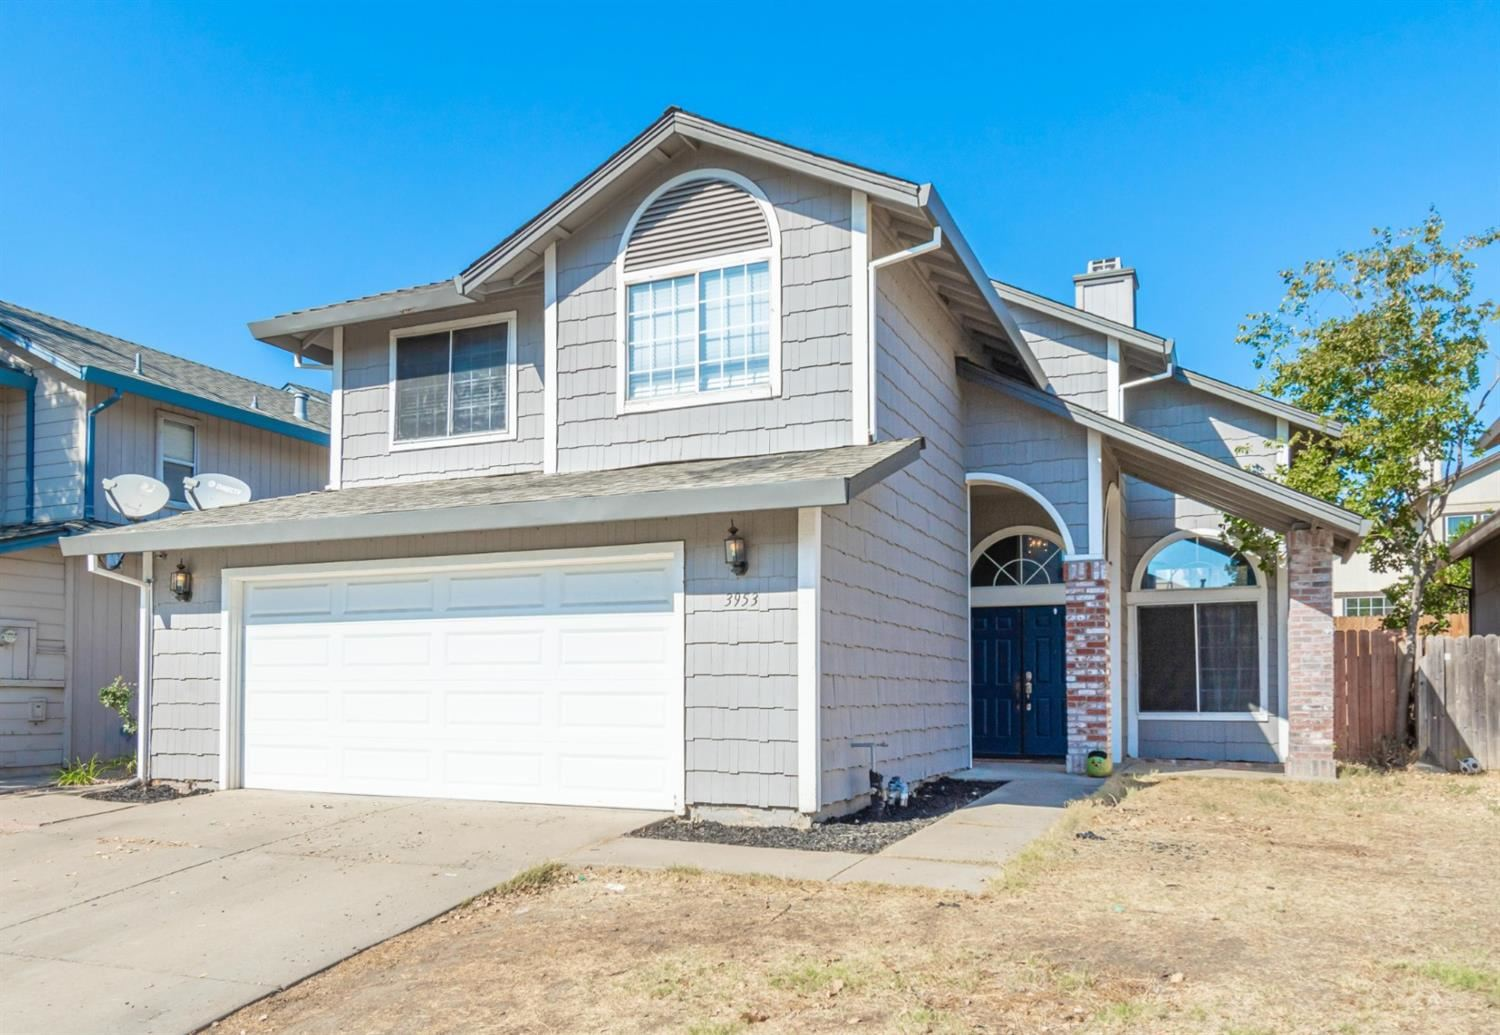 Photo of 3953 Grey Livery Way, Antelope, CA 95843 (MLS # 20063676)